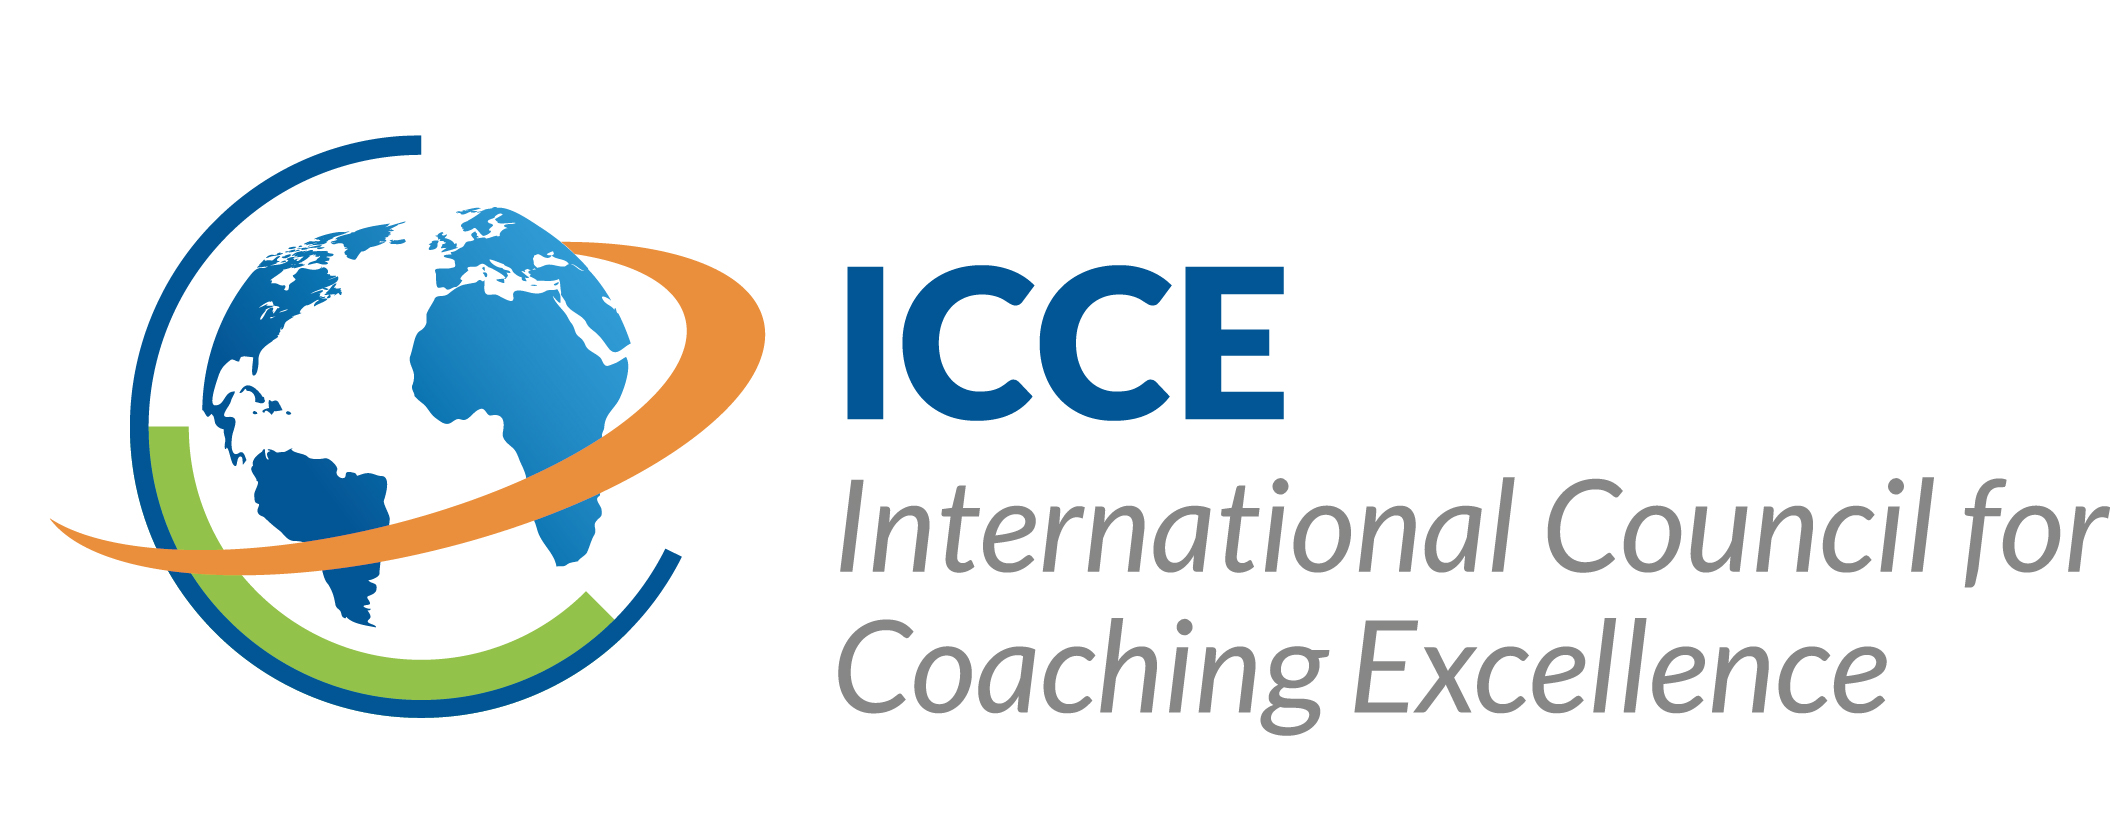 ICCE_excellence_logo.jpg